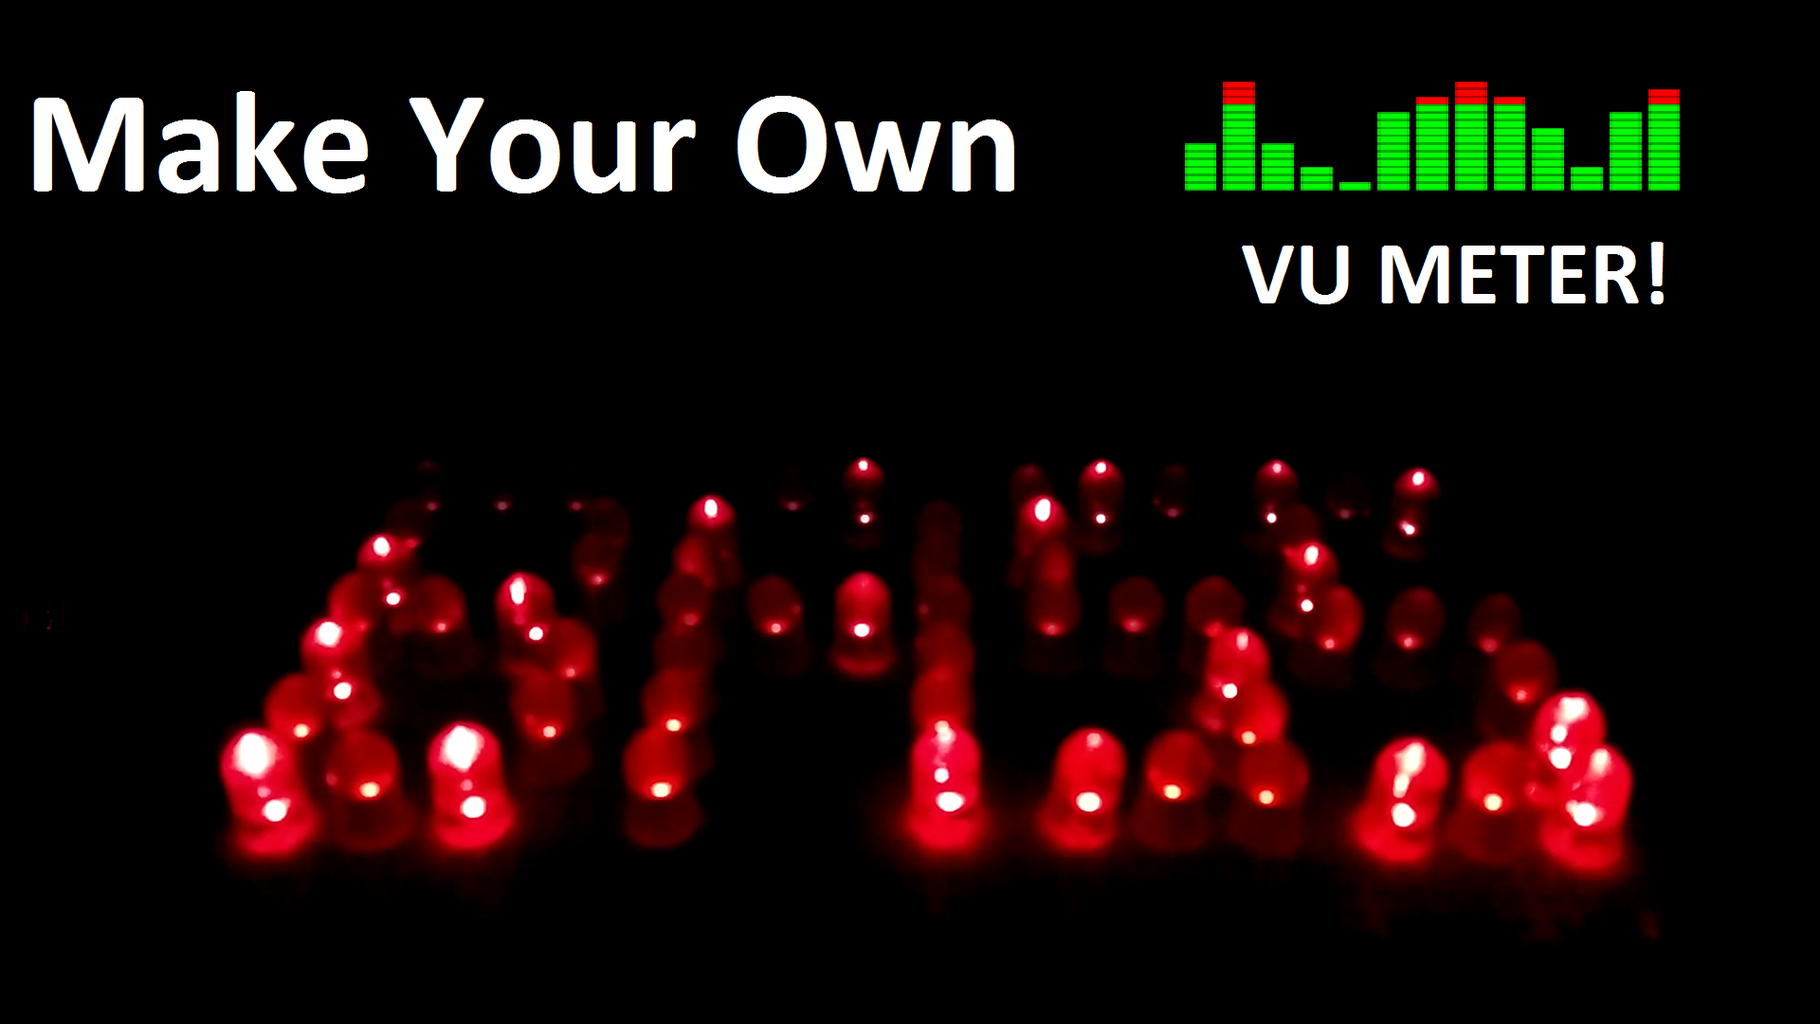 Make Your Own Awesome VU Meter!